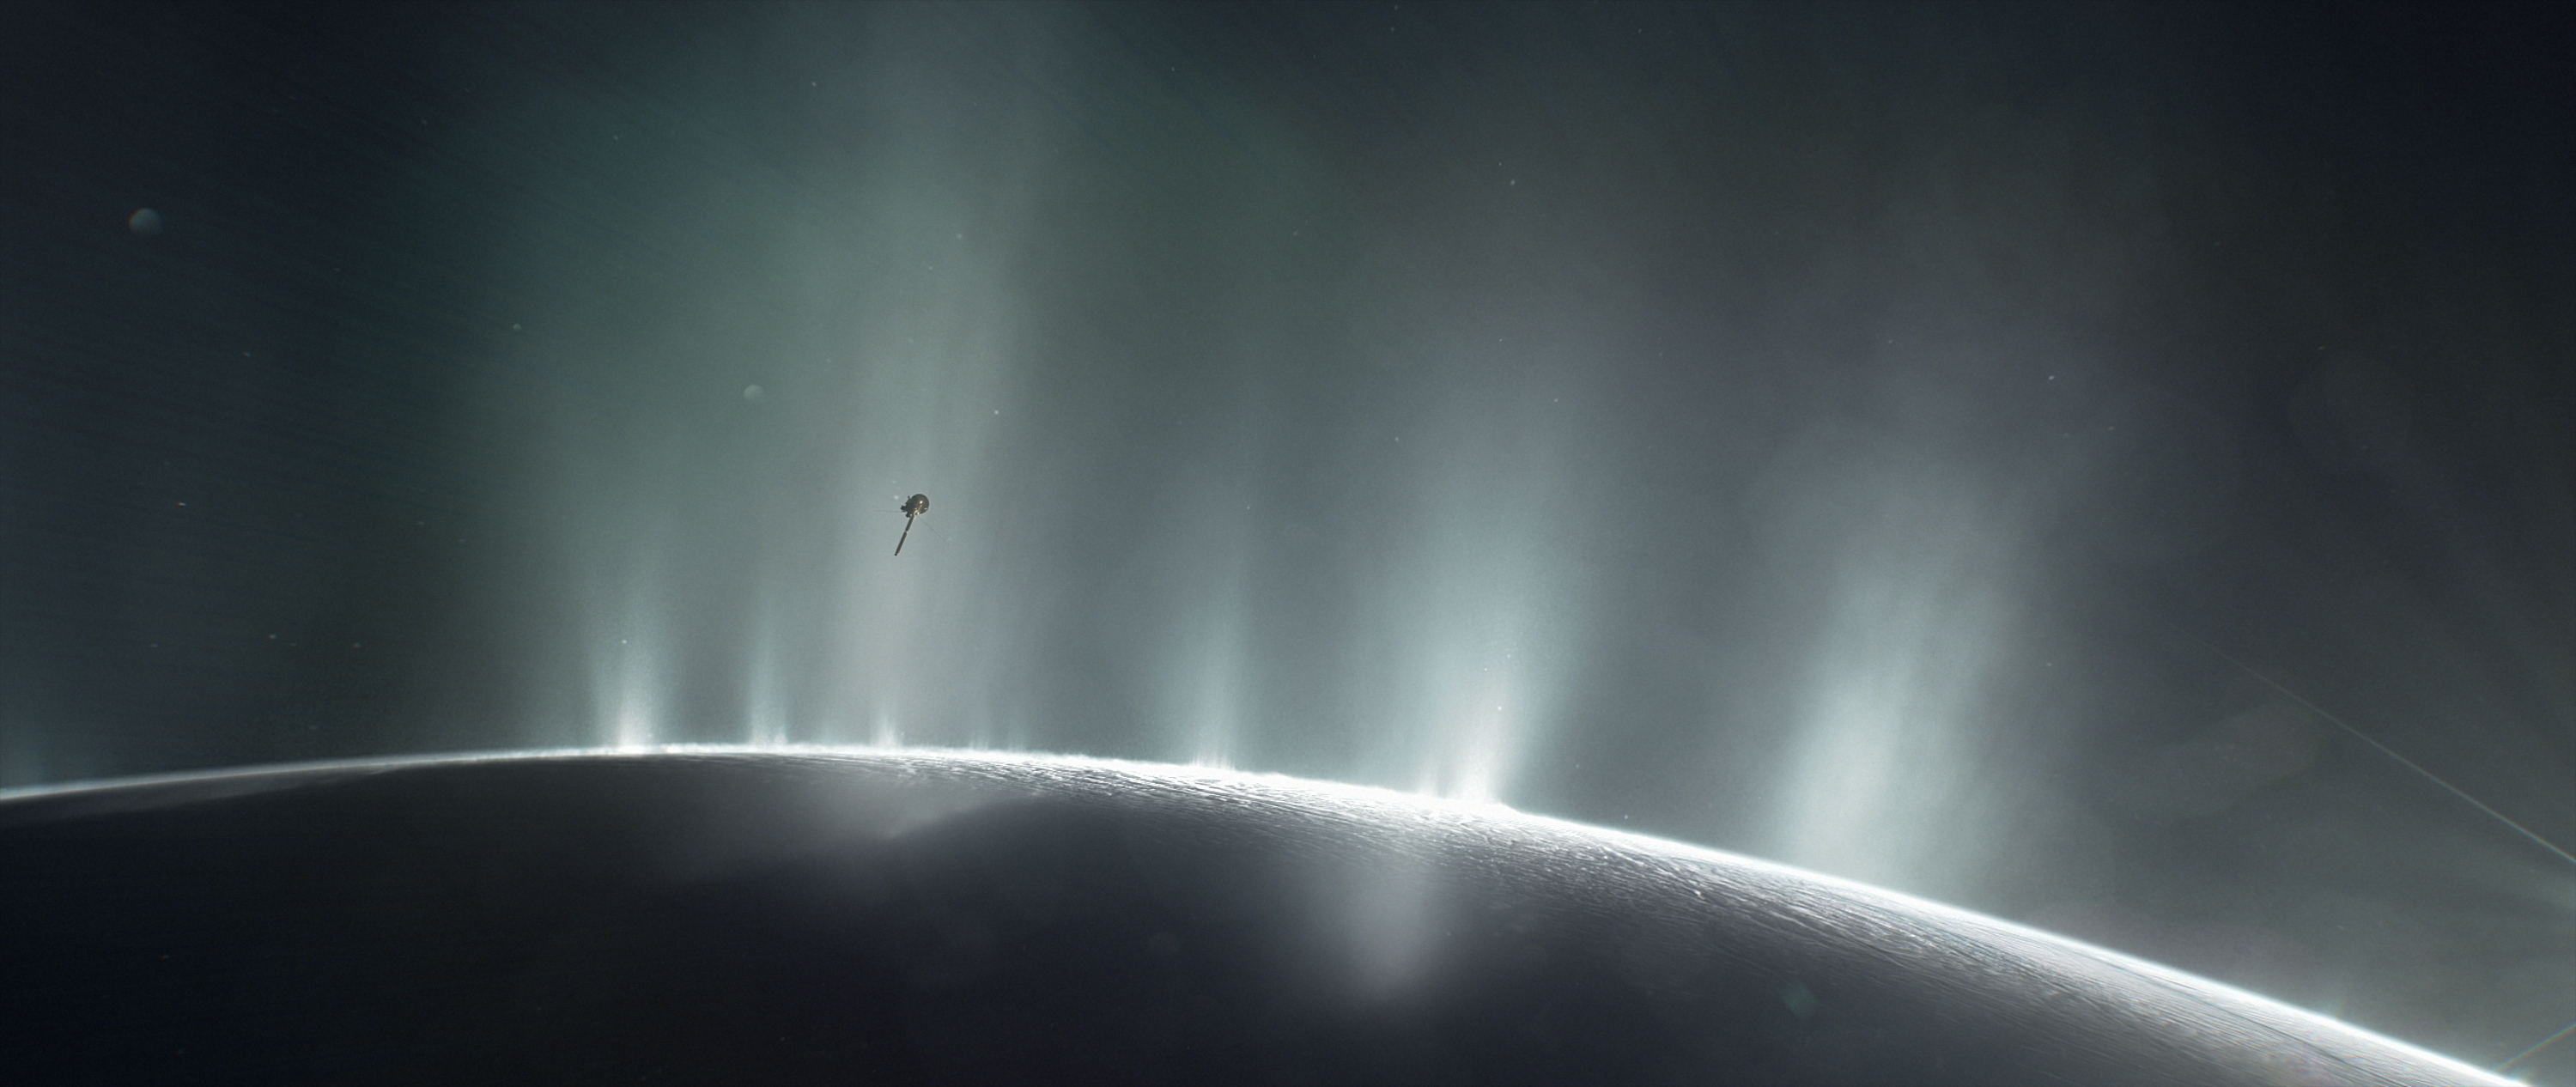 This illustration shows Cassini diving through the Enceladus plume in 2015. New ocean world discoveries from Cassini and Hubble will help inform future exploration and the broader search for life beyond Earth. Credits: NASA/JPL-Caltech Image credit: